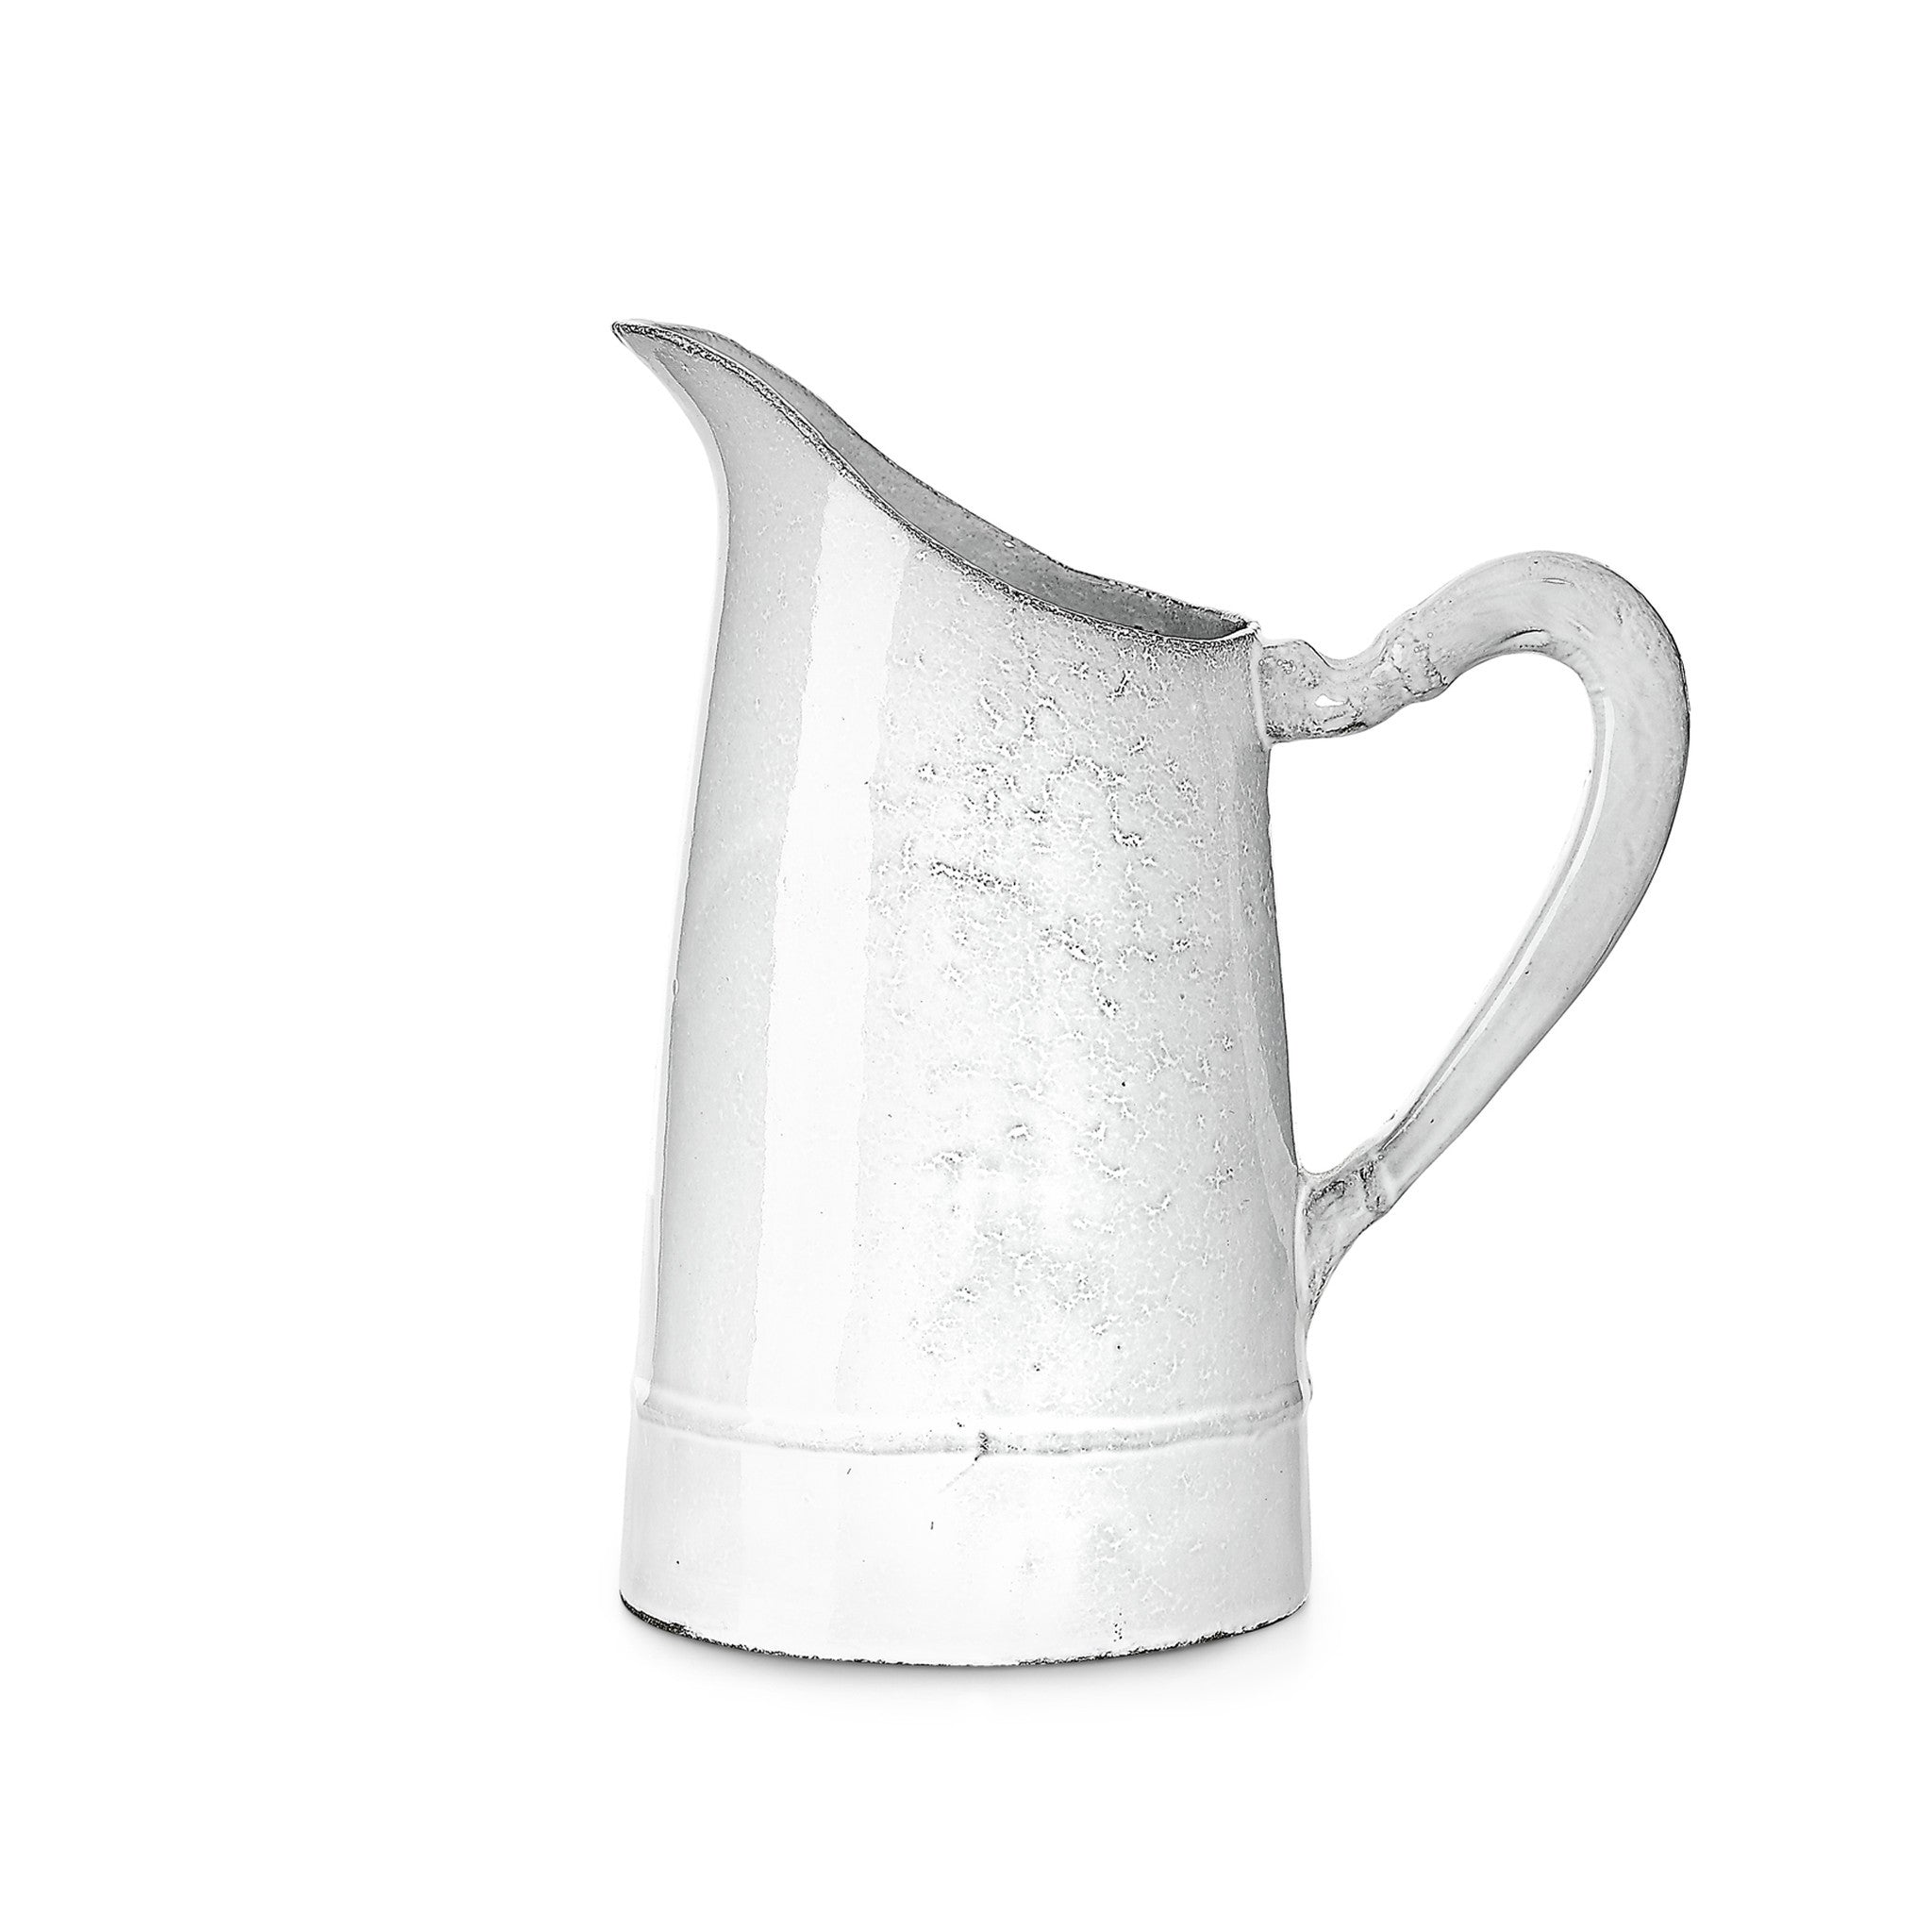 Simple Large Pitcher by Astier de Villatte